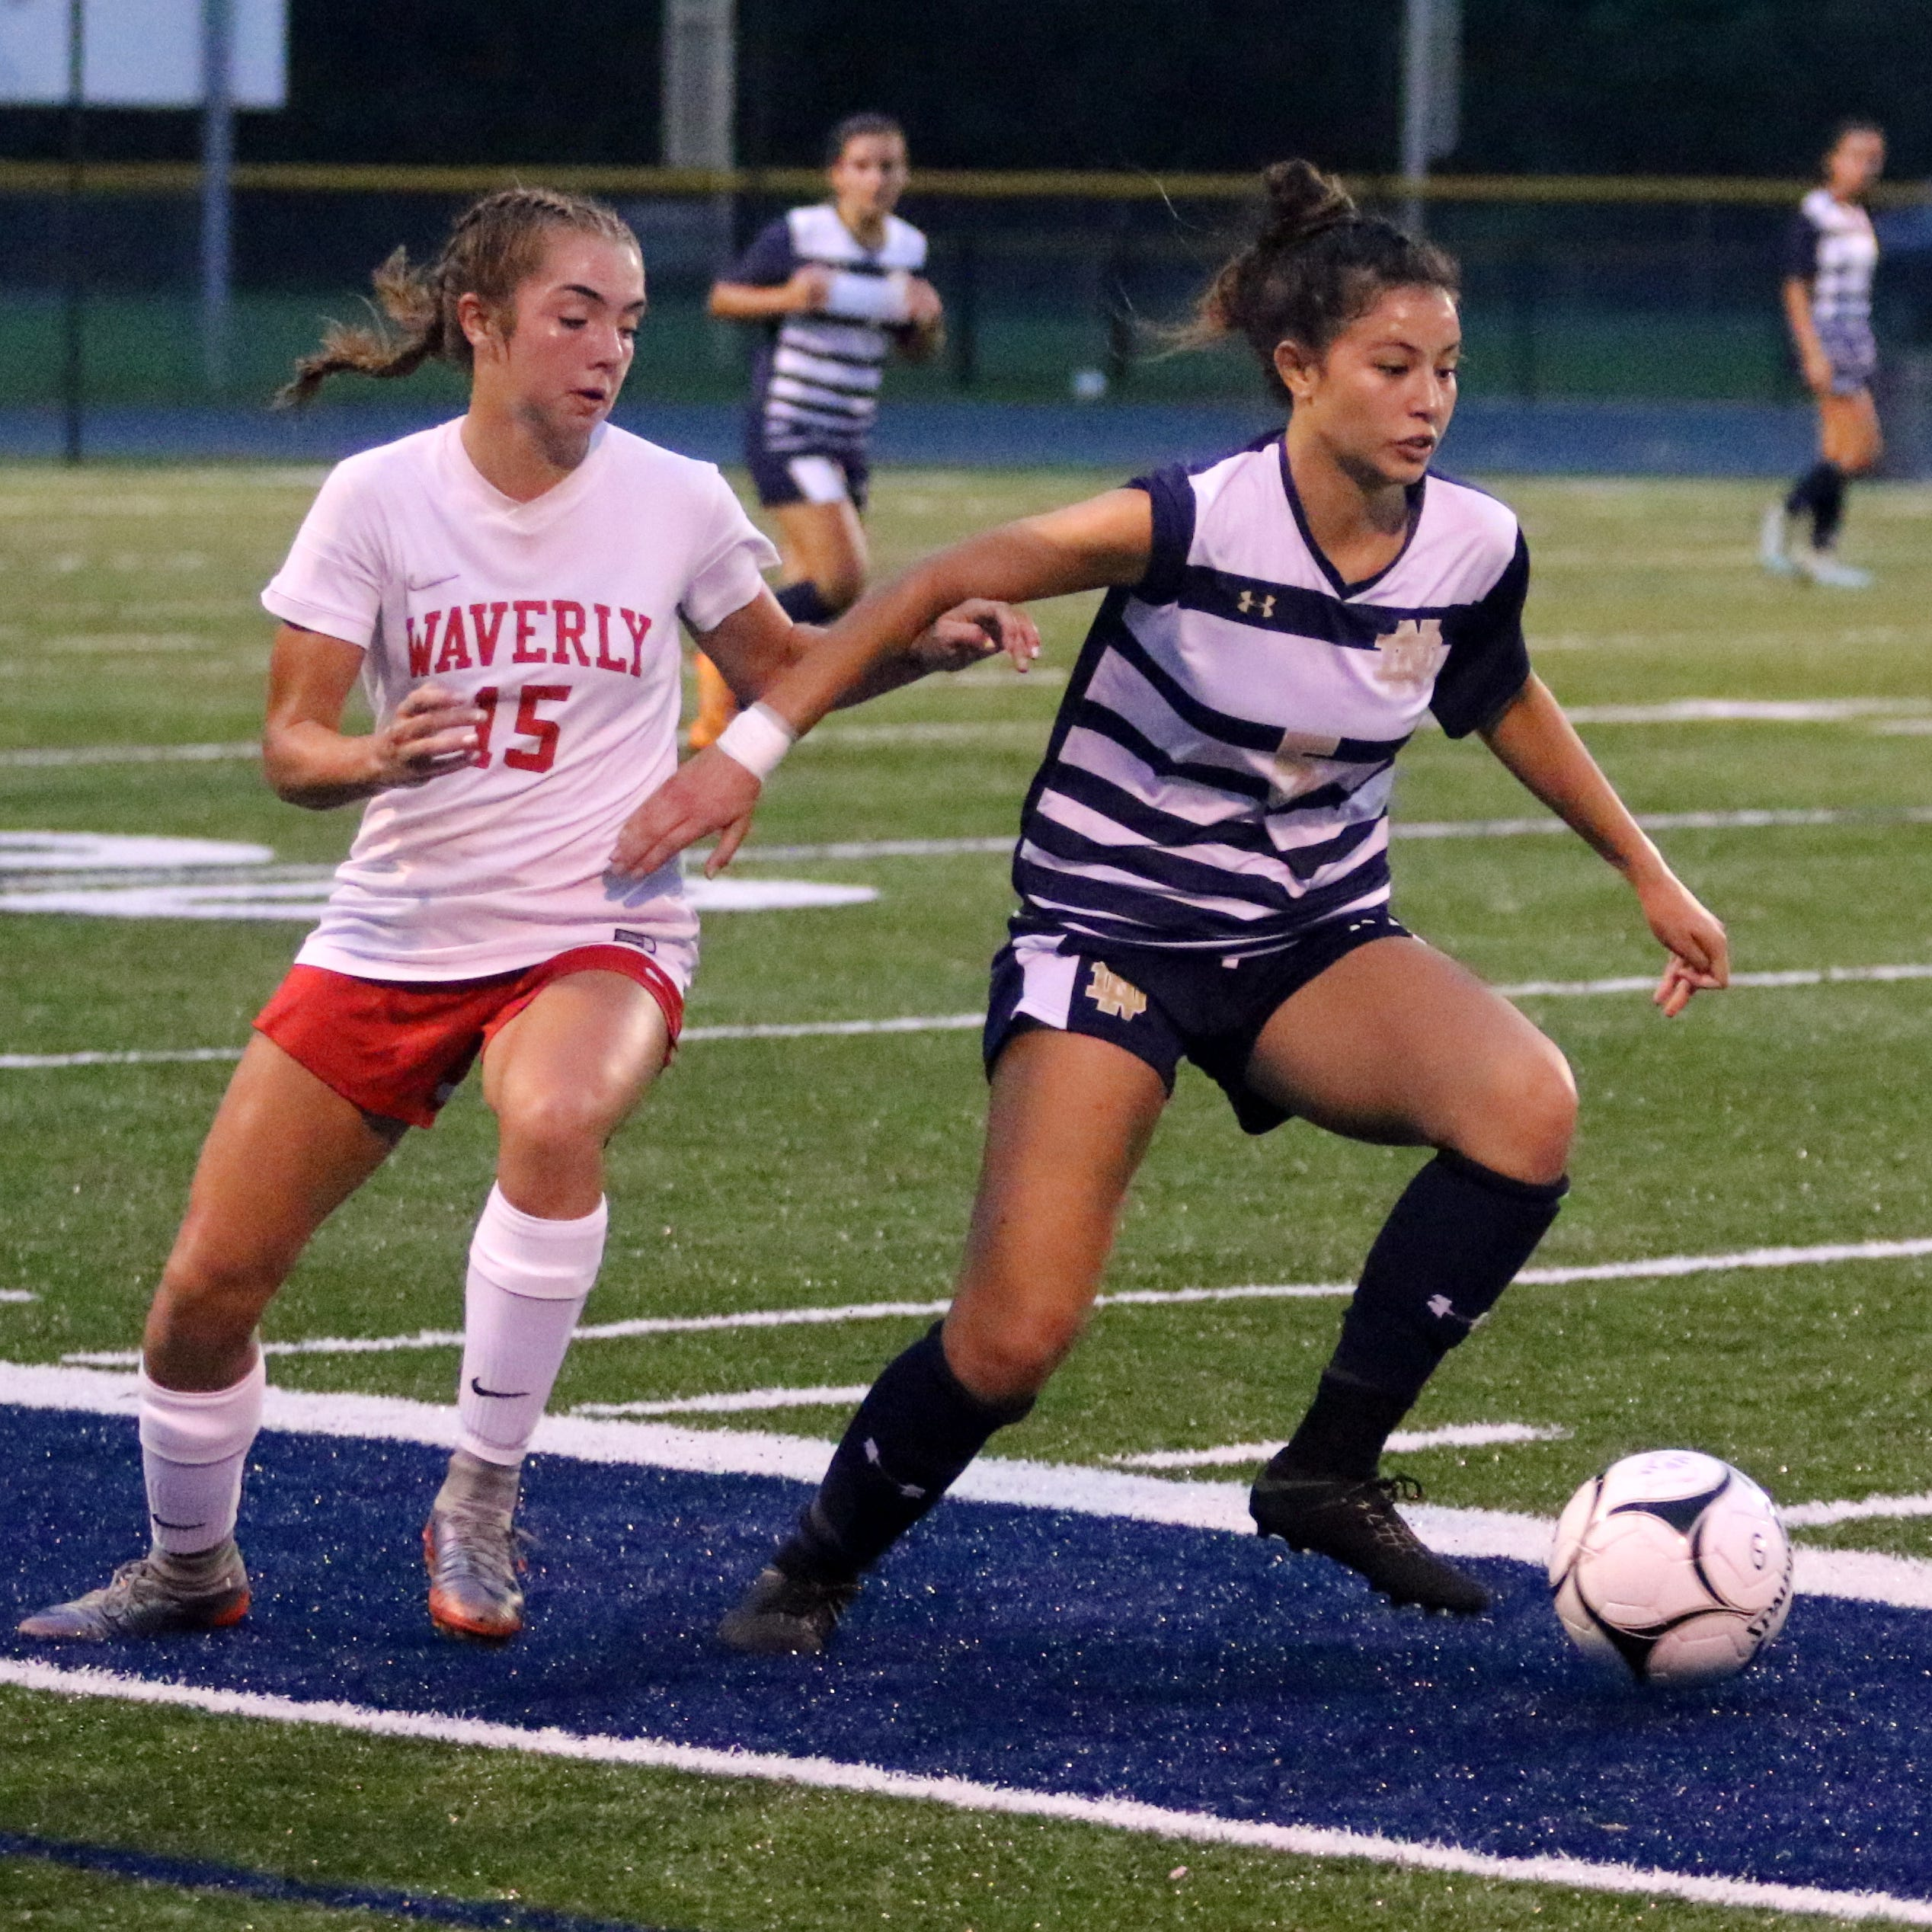 Reunion of IAC girls soccer powers goes Waverly's way with 4-0 win over Notre Dame